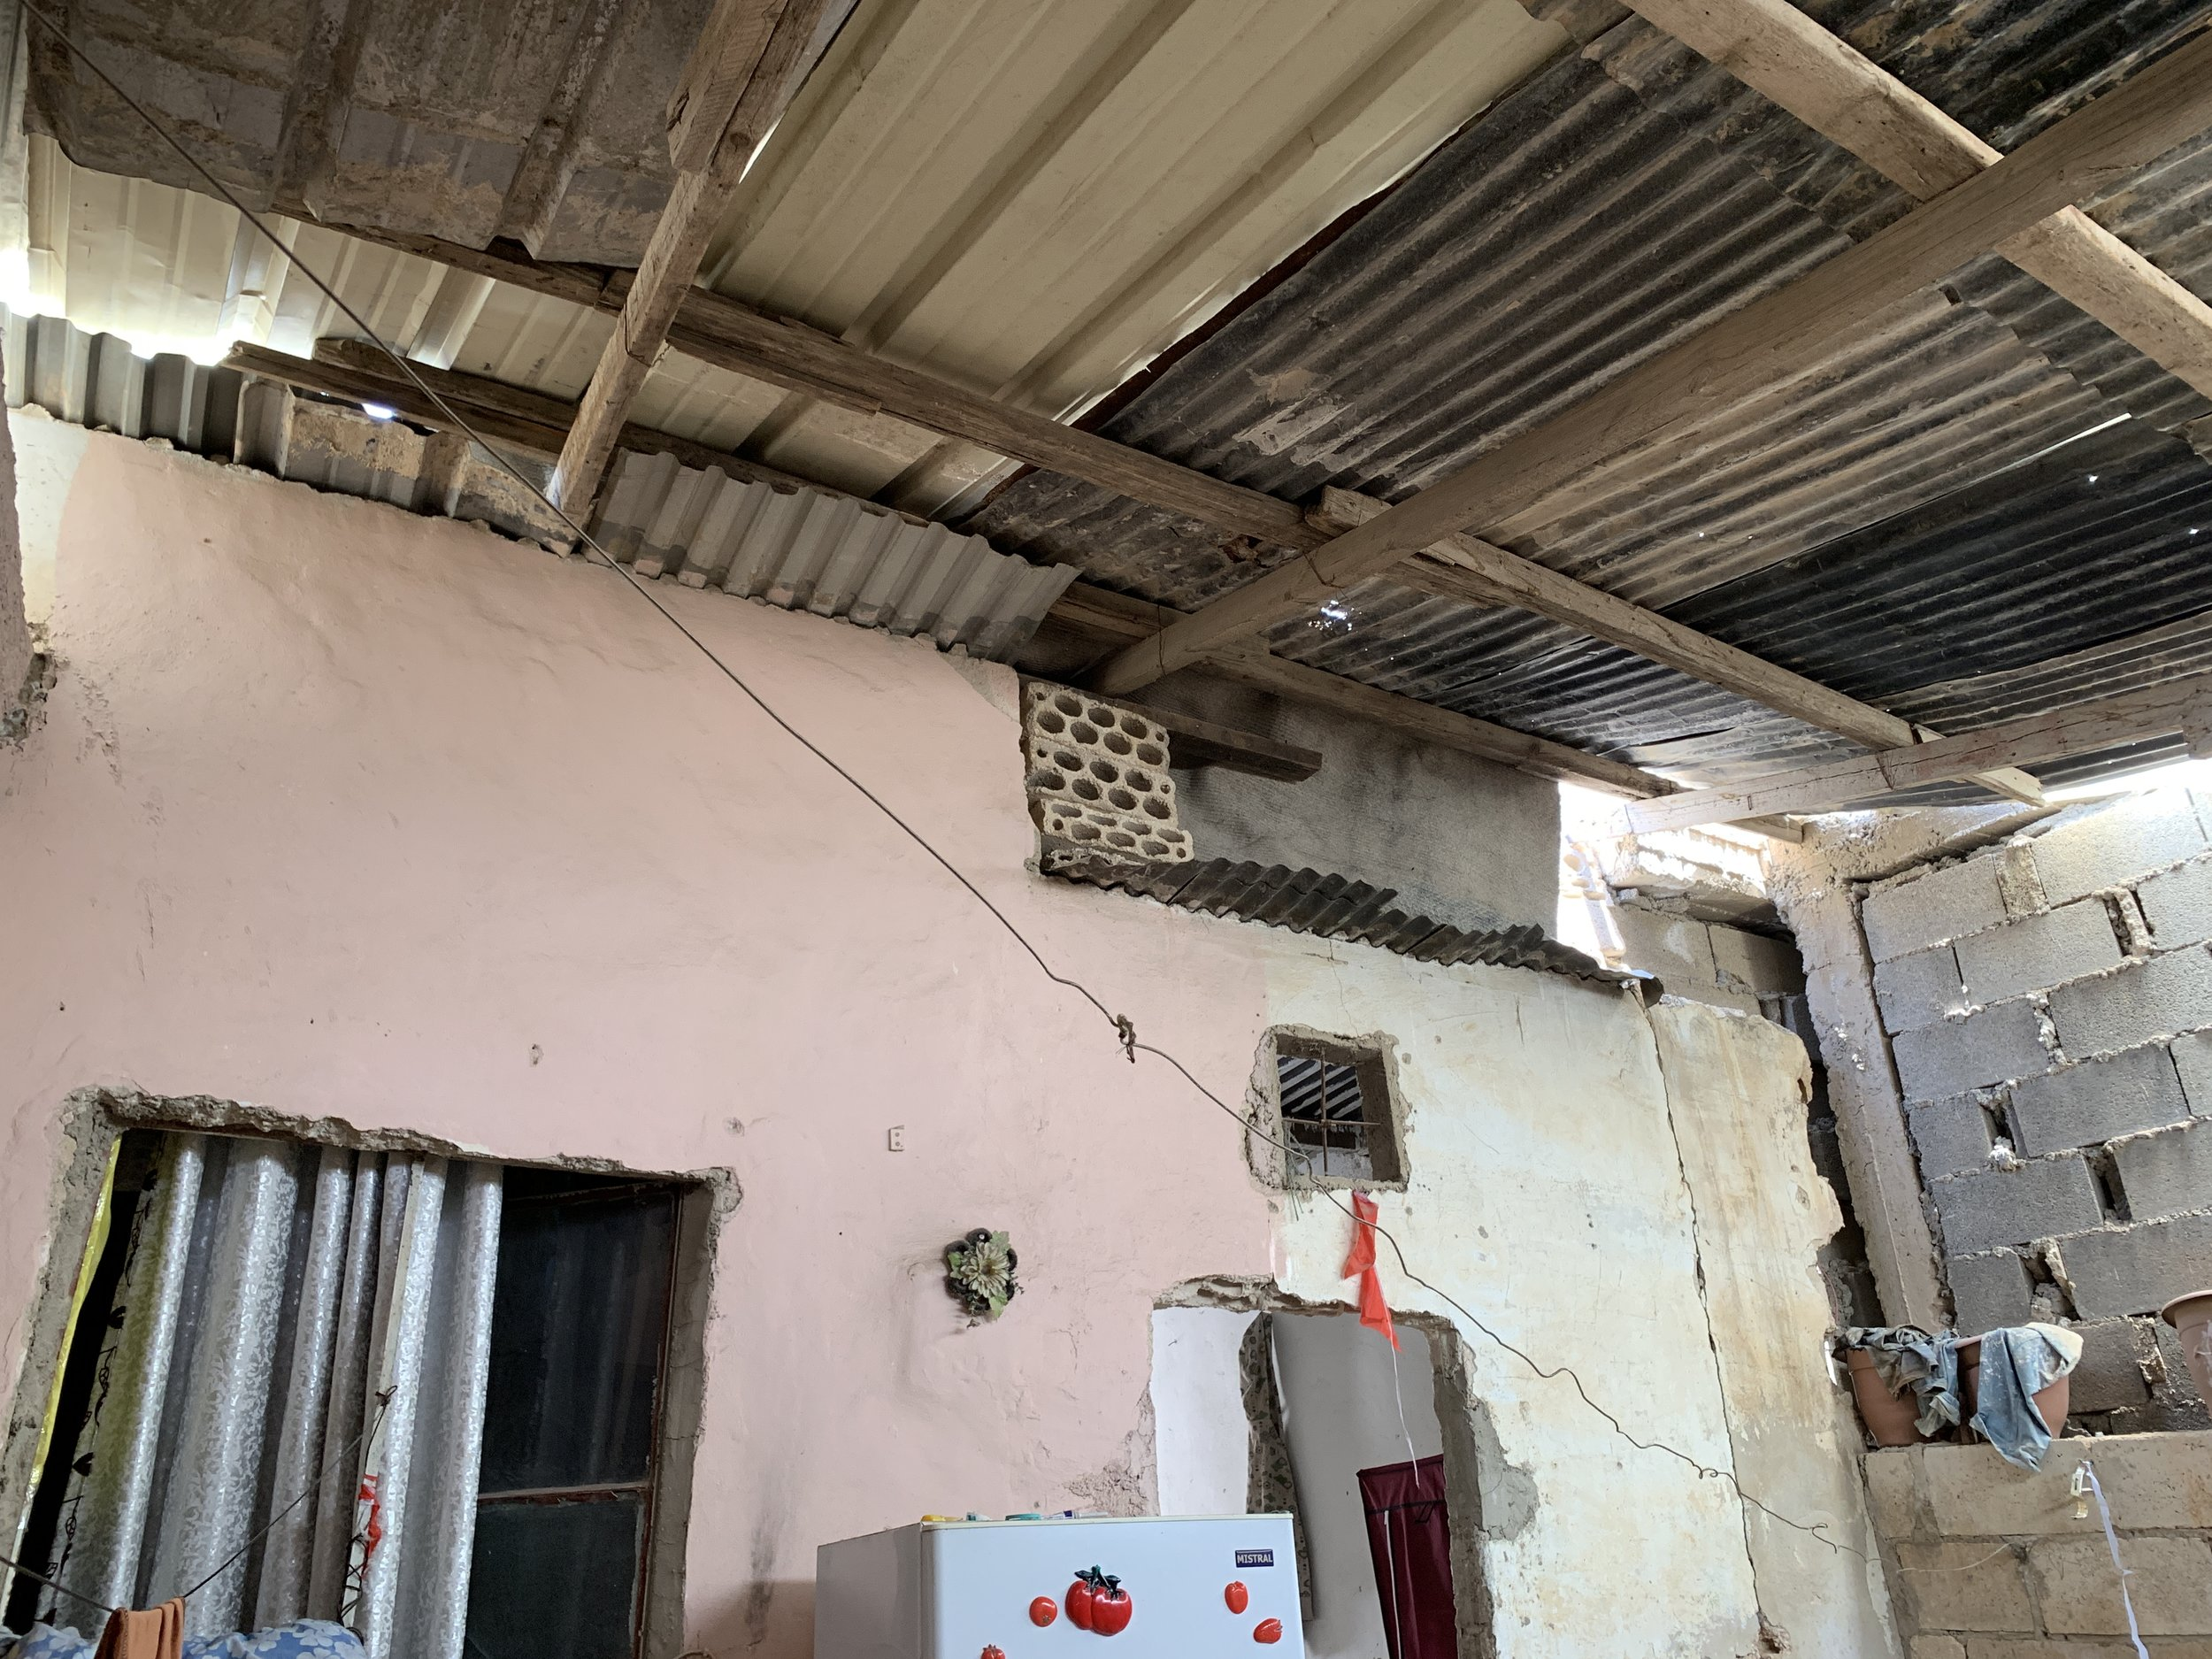 A roof over your head - We are on a mission to fix roofs for people in need across Jordan